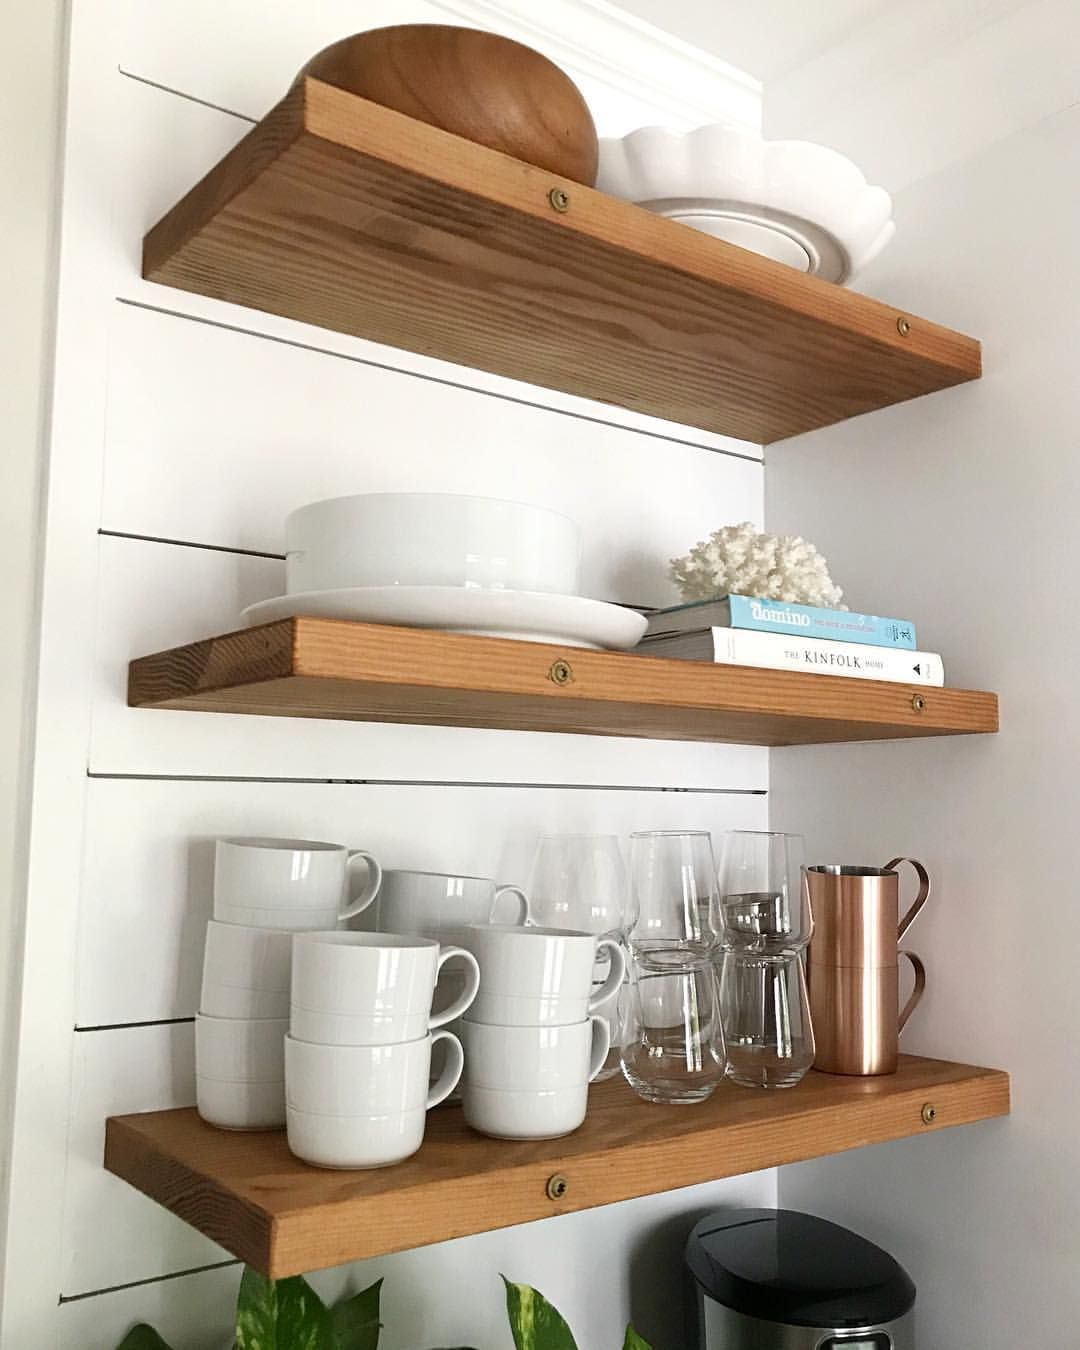 floating kitchen shelves with white dishes kitchenshelves for shelfstyling shiplap fire surround black glass wall shelf dinnerware storage rack best closet design narrow ikea